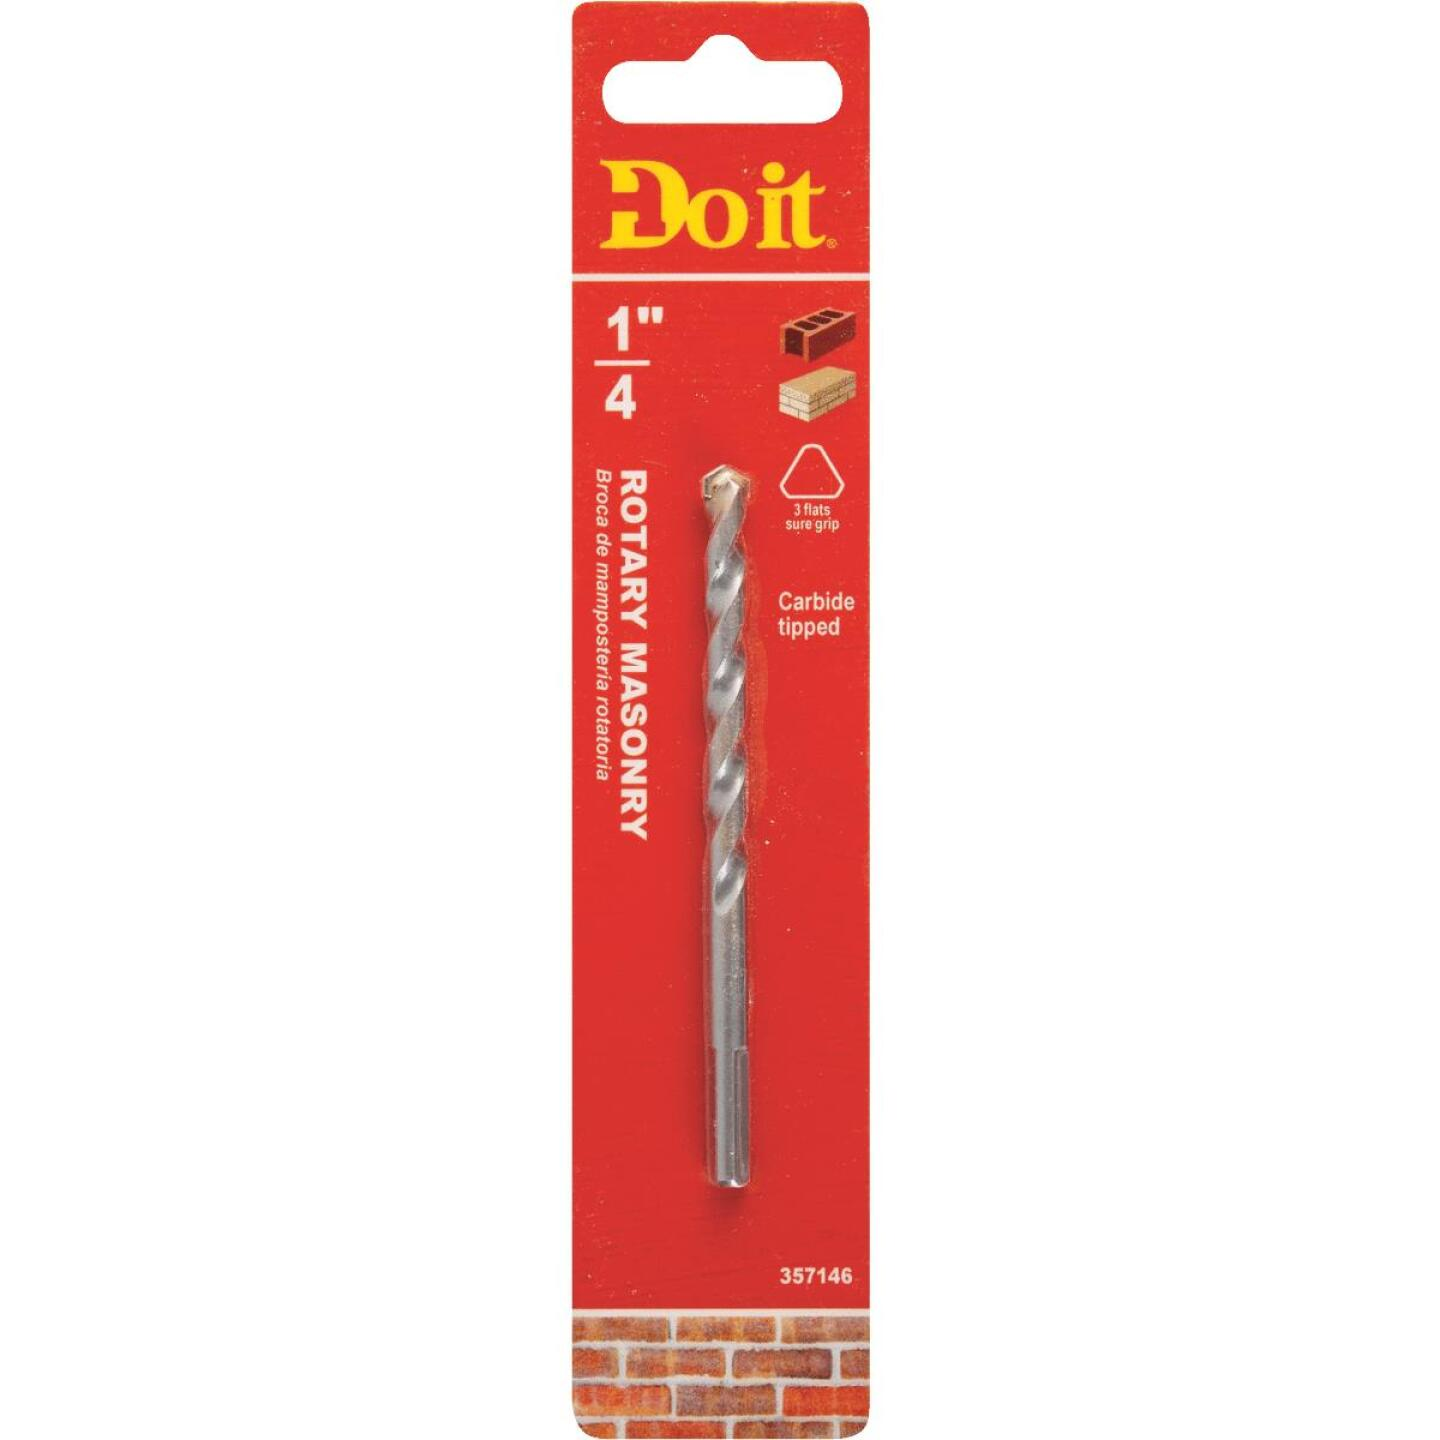 Do it 1/4 In. x 4 In. x 2.Rotary Masonry Drill Bit Image 1